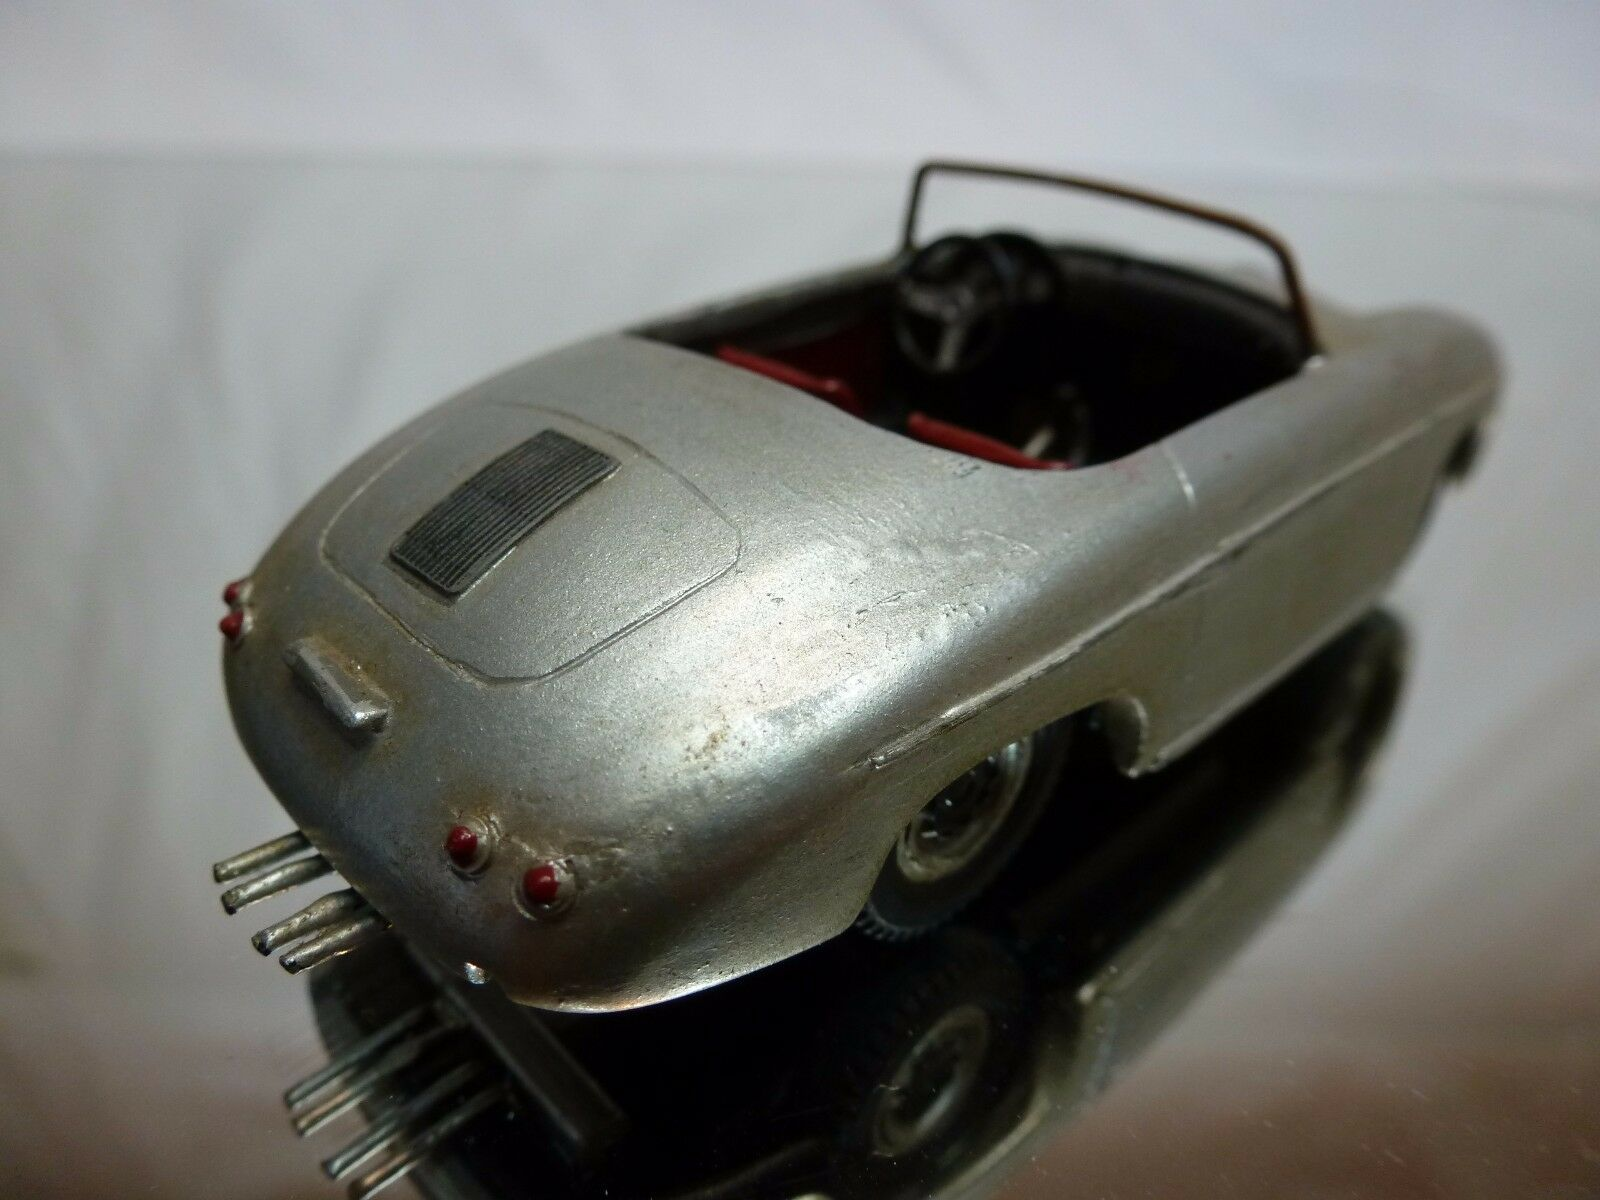 AUTO REPLICAS 8 KIT (built) PORSCHE 356 356 356 SPEEDSTER - plata 1 43 - GOOD CONDITION a0e80d